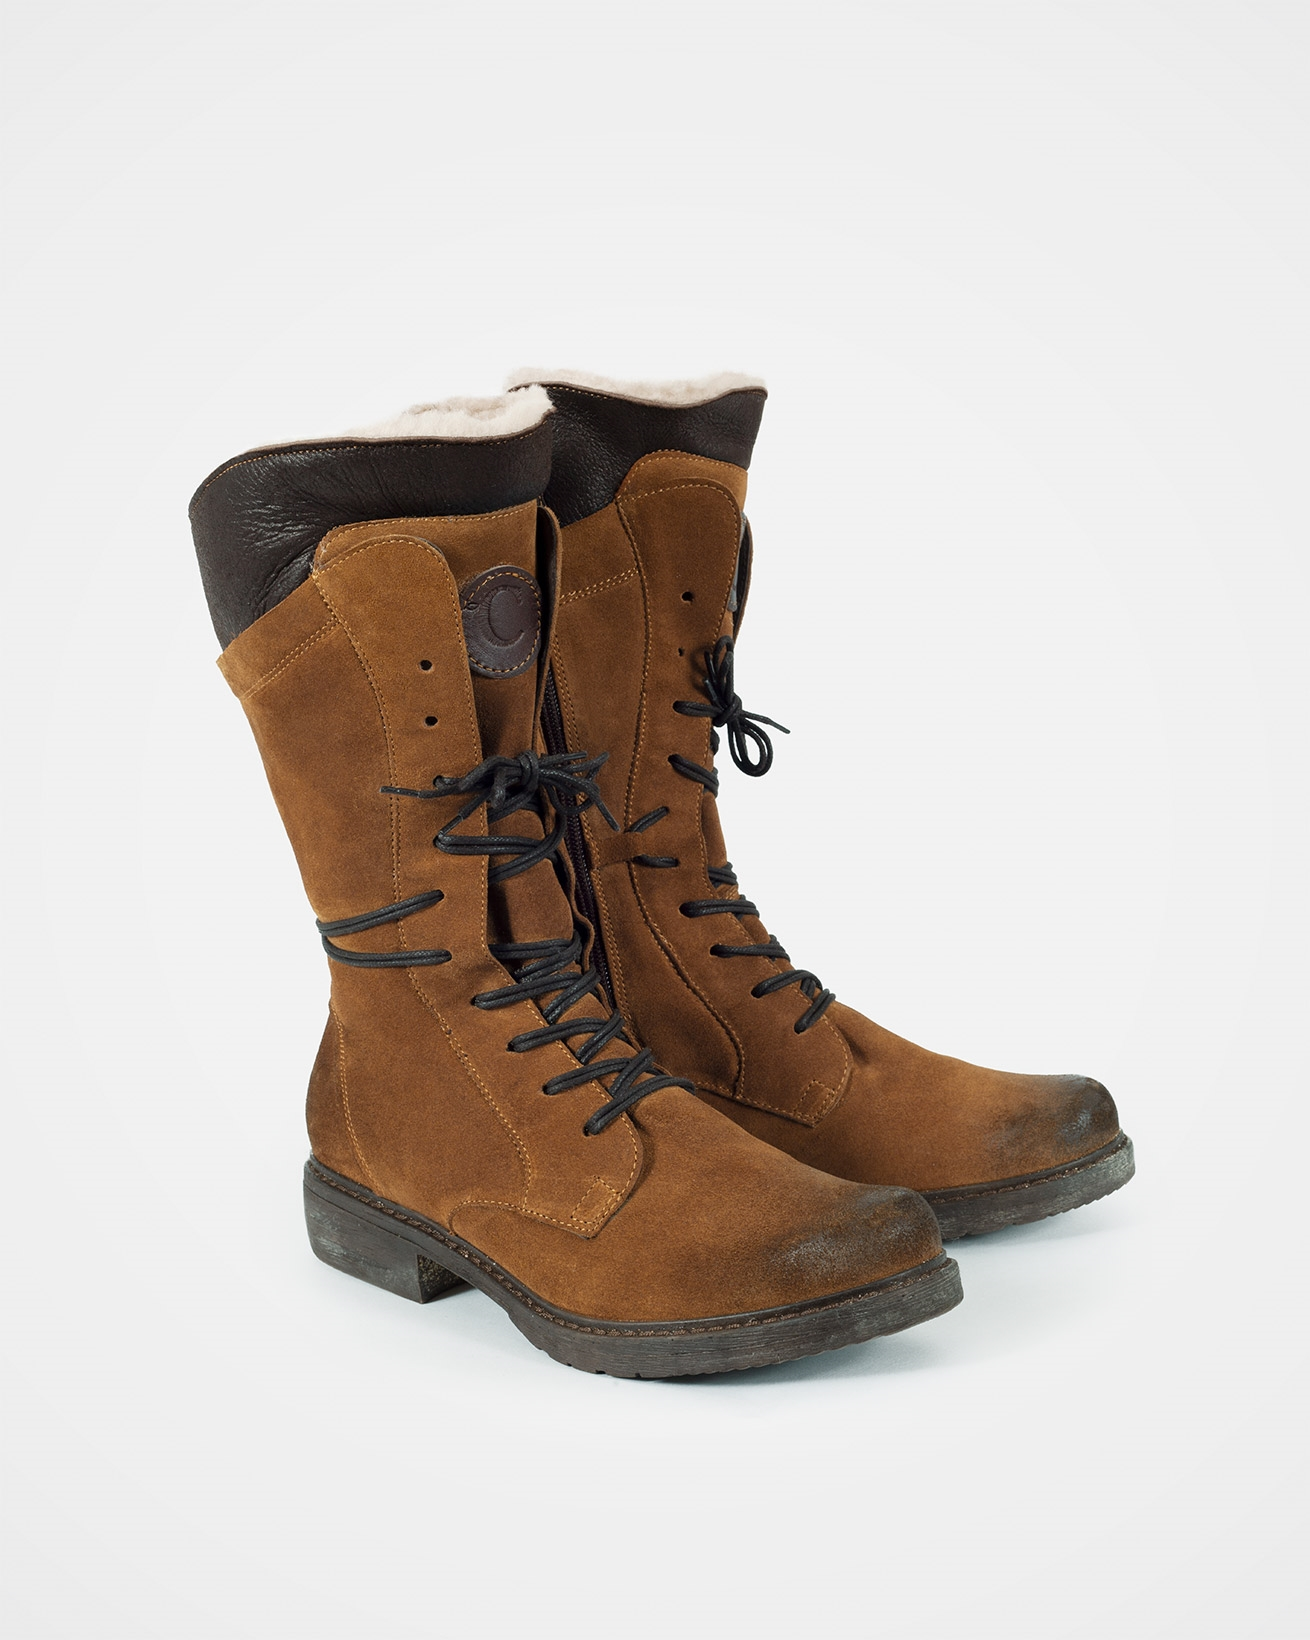 Woodsman Boot - Size 37 - Cinnamon - 1587